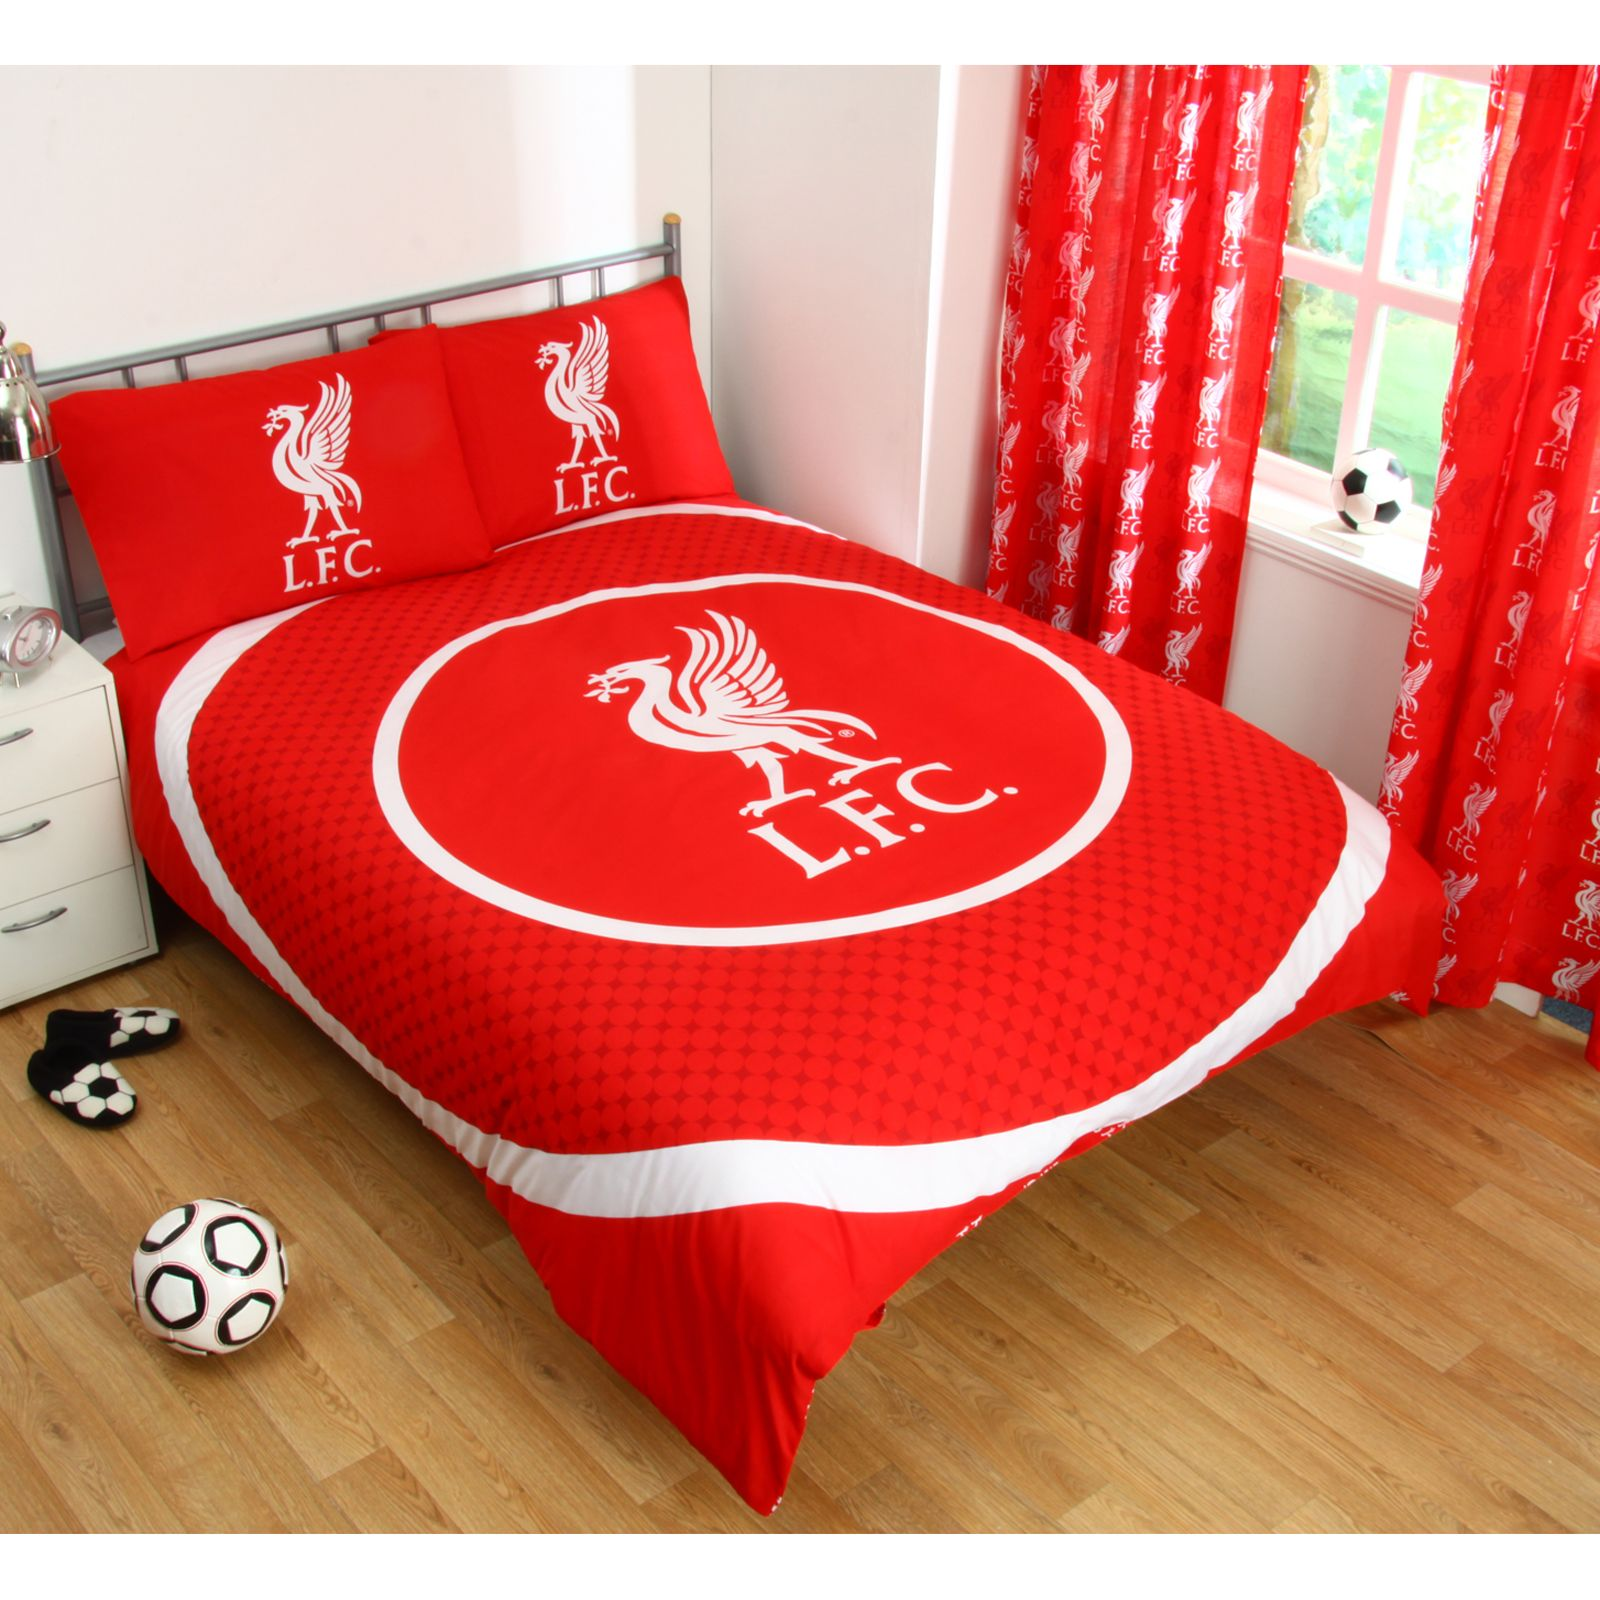 Liverpool Wallpaper For Bedroom Liverpool Fc Single And Double Duvet Cover Sets Bedroom Bedding